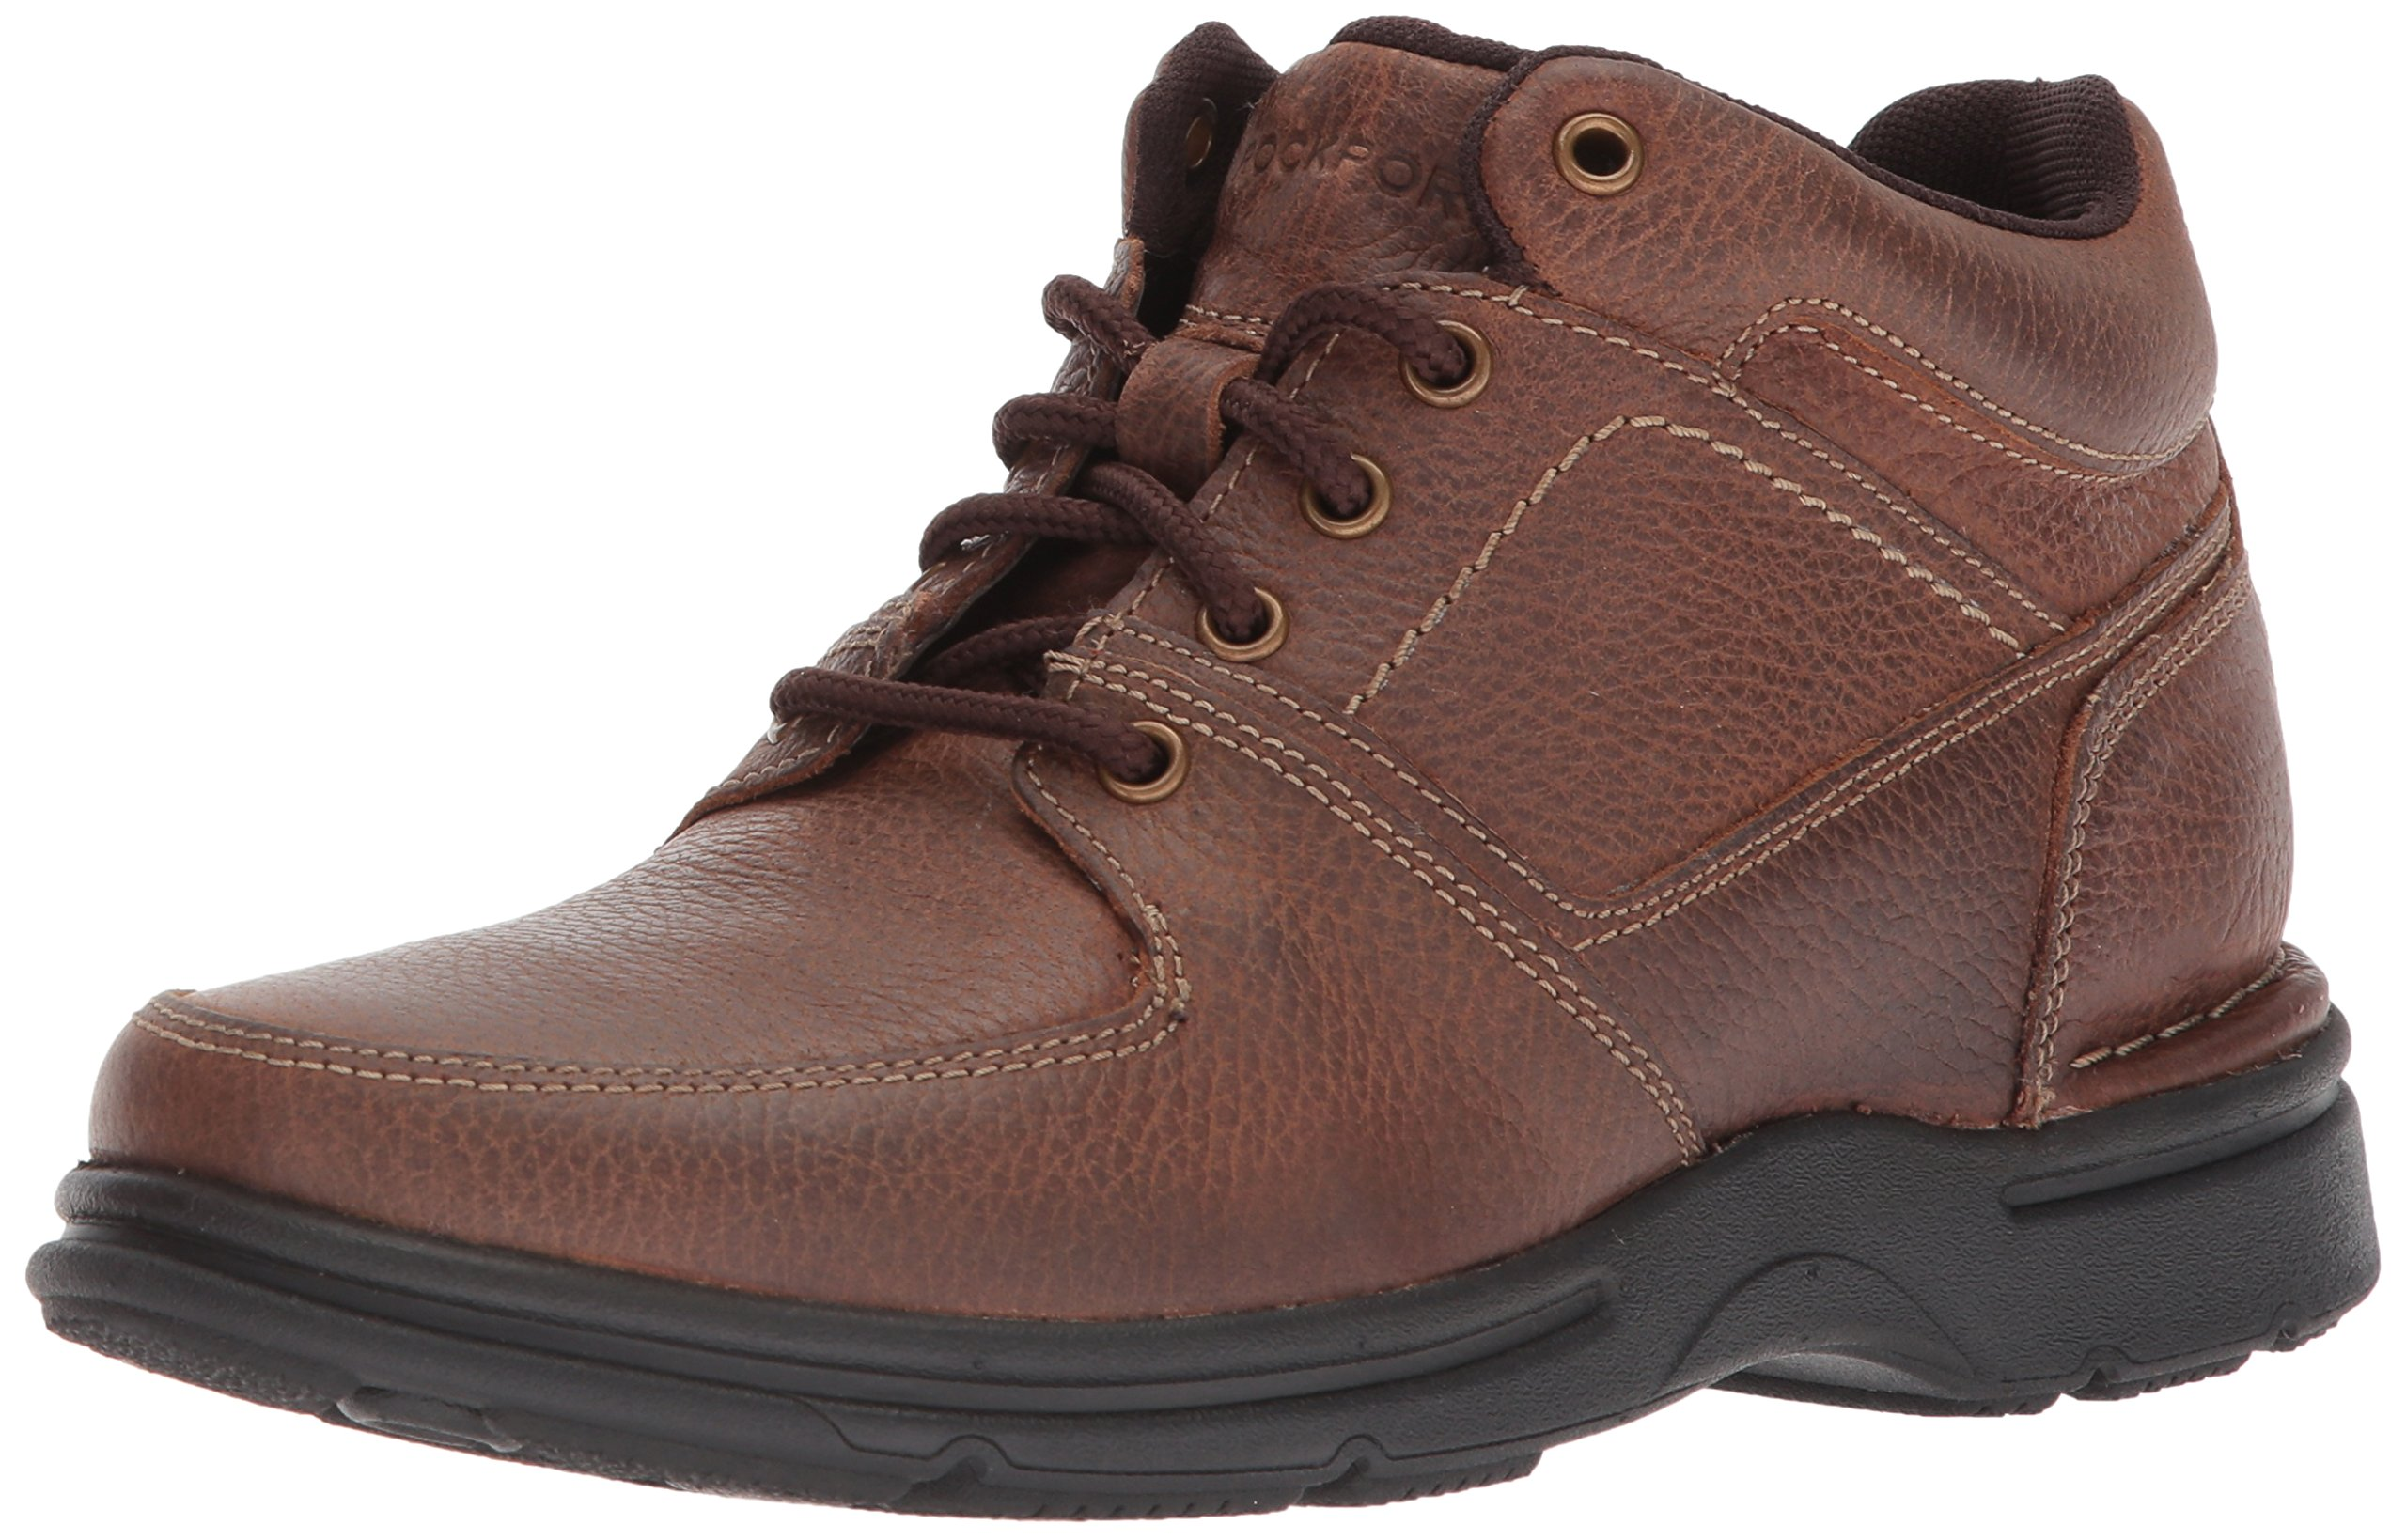 Rockport Men's Eureka Plus Boot Winter Boot, Brindle Brown, 11.5 M US